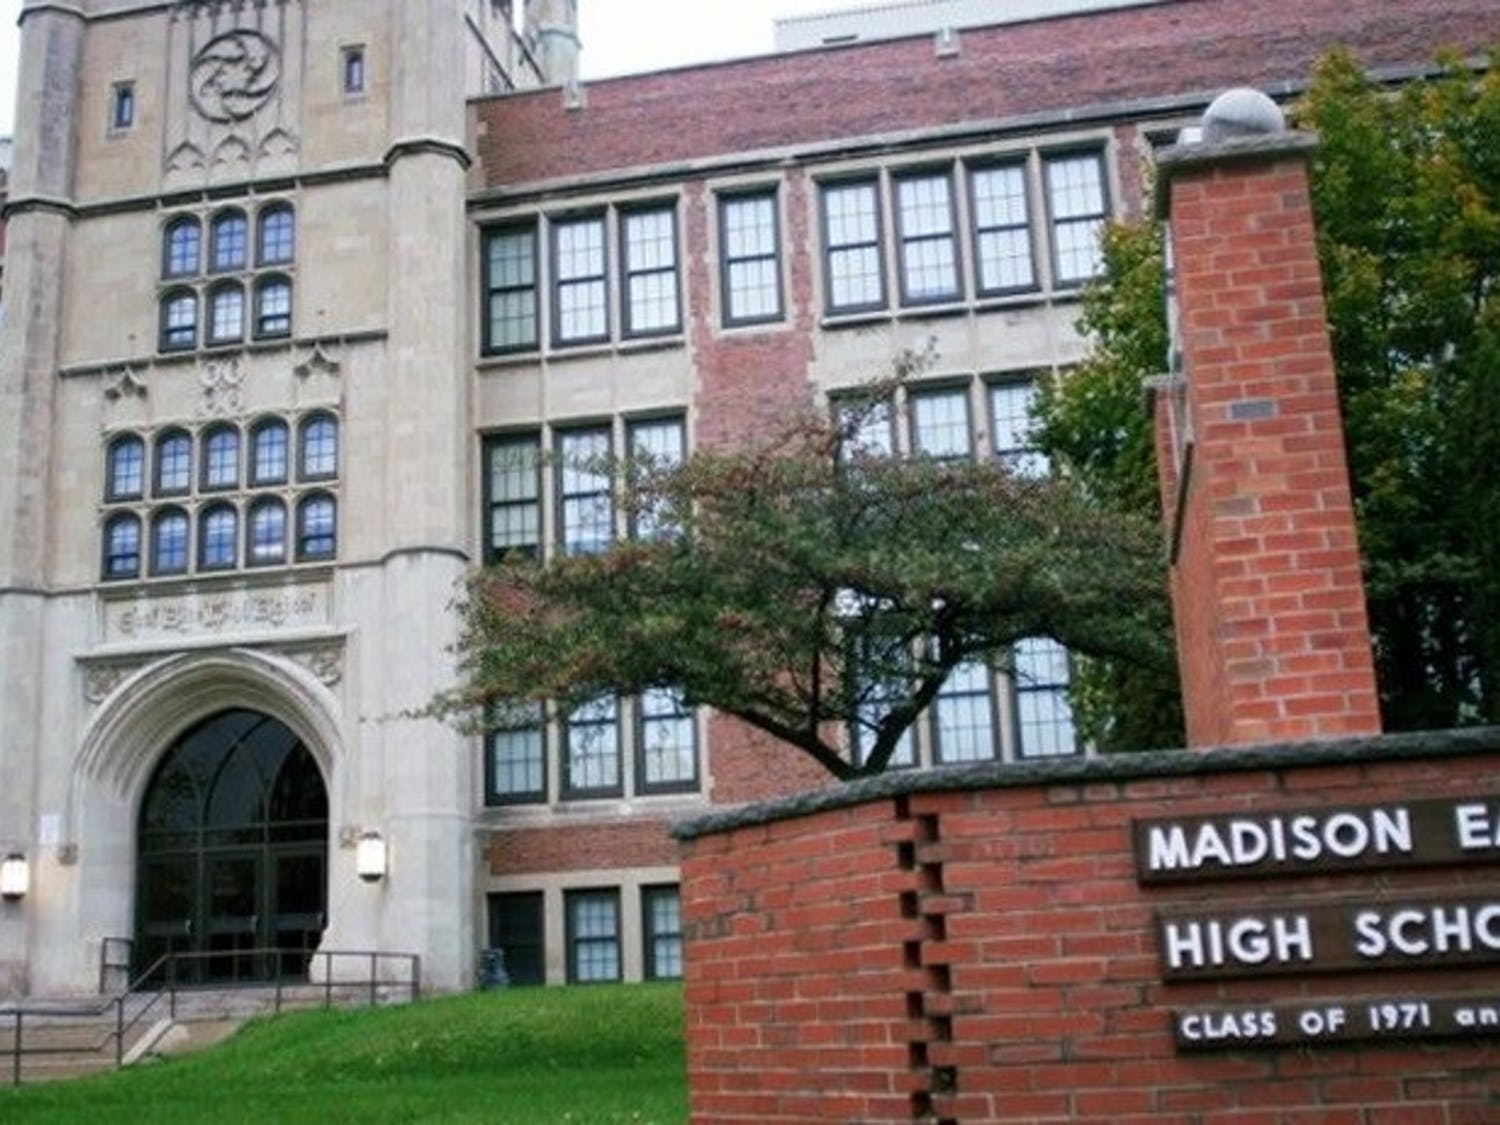 About 8.66 percent of MMSD students in grades five through 12 are at risk of not graduating high school, according to recent data.